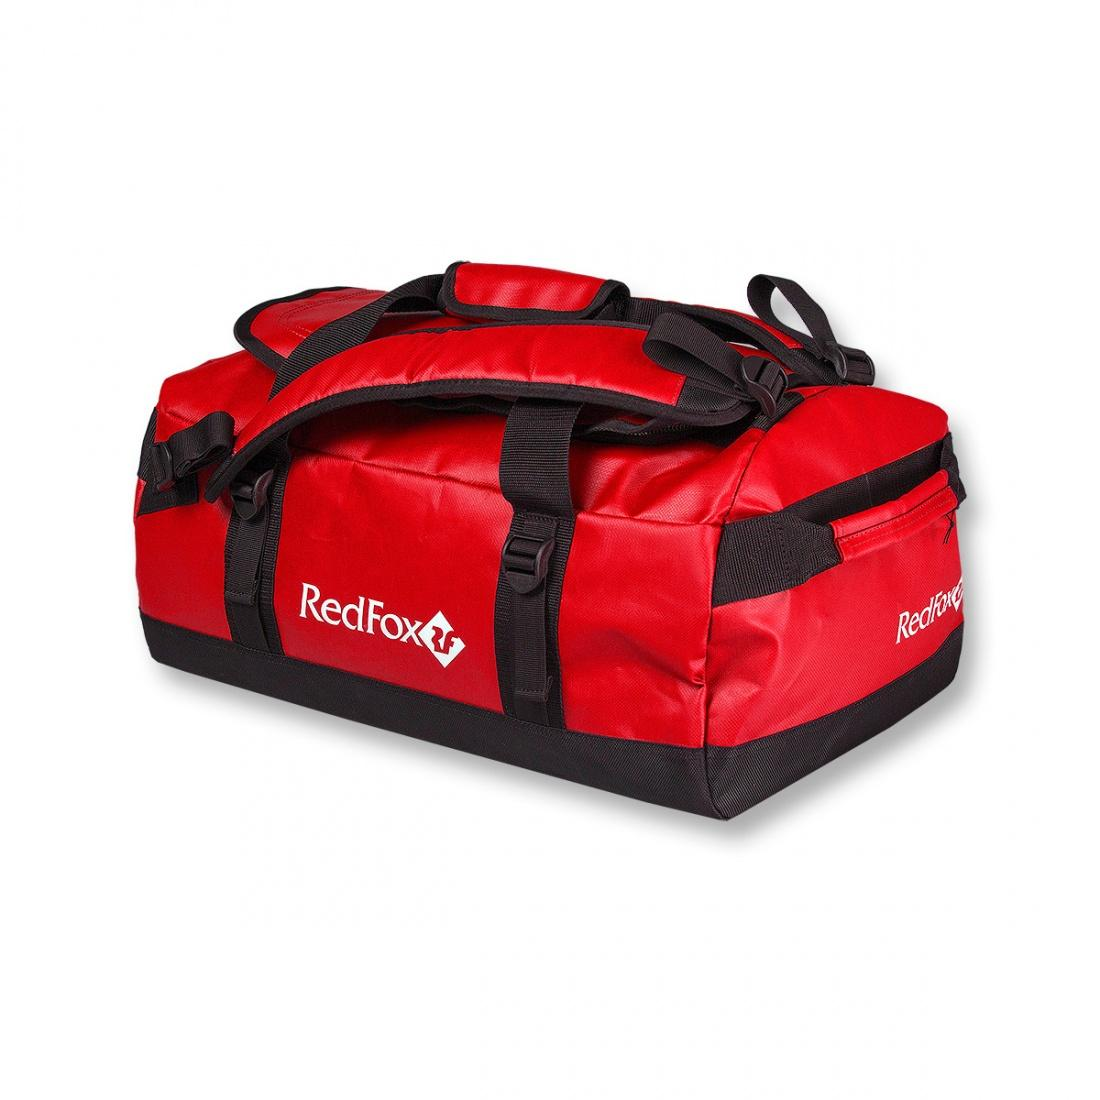 Баул Expedition Duffel Bag 100 от Red Fox